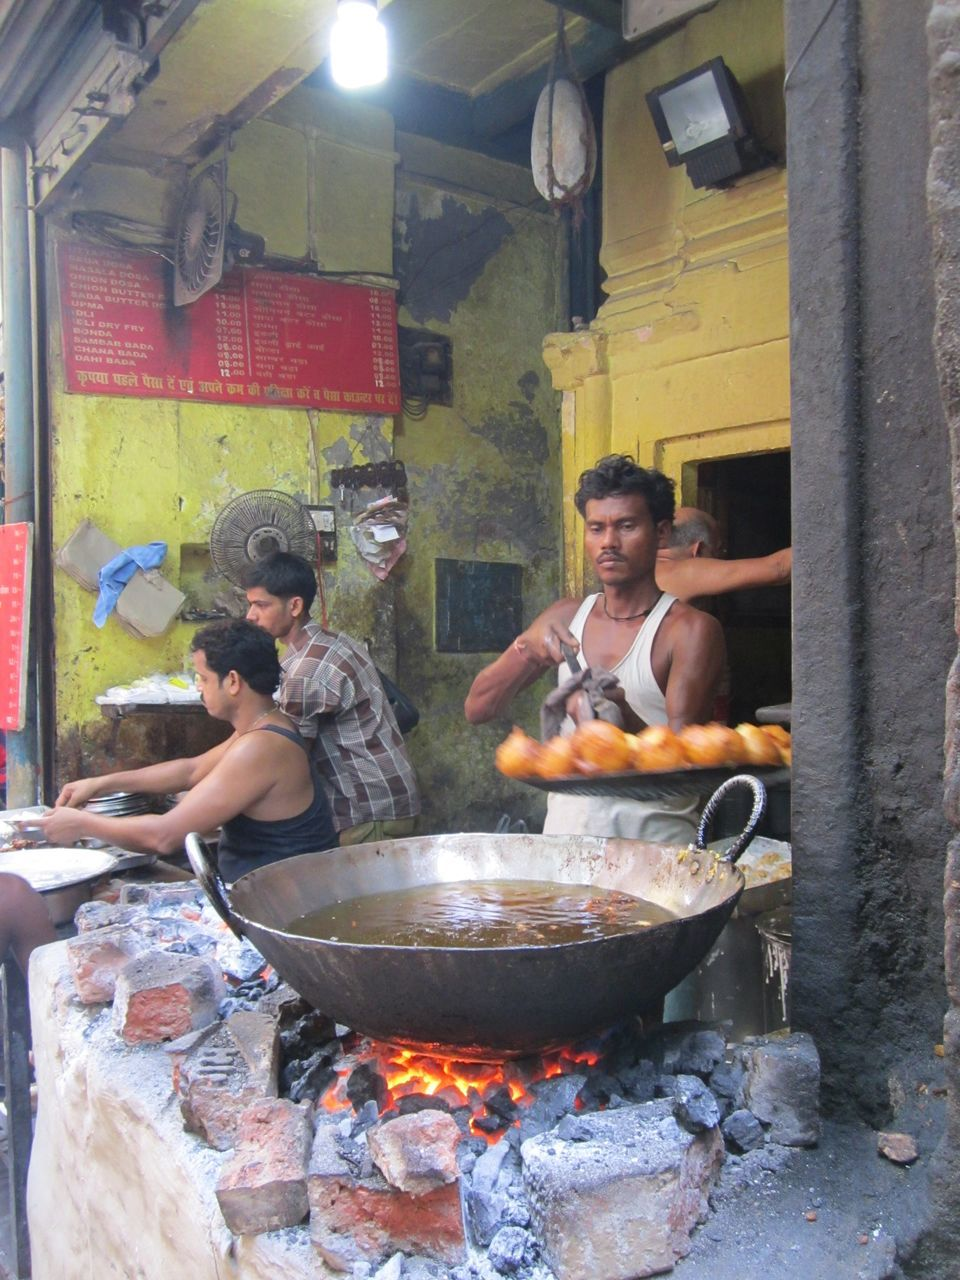 real people, preparation, built structure, leisure activity, burning, food and drink, food, lifestyles, togetherness, architecture, flame, day, men, indoors, young women, young adult, people